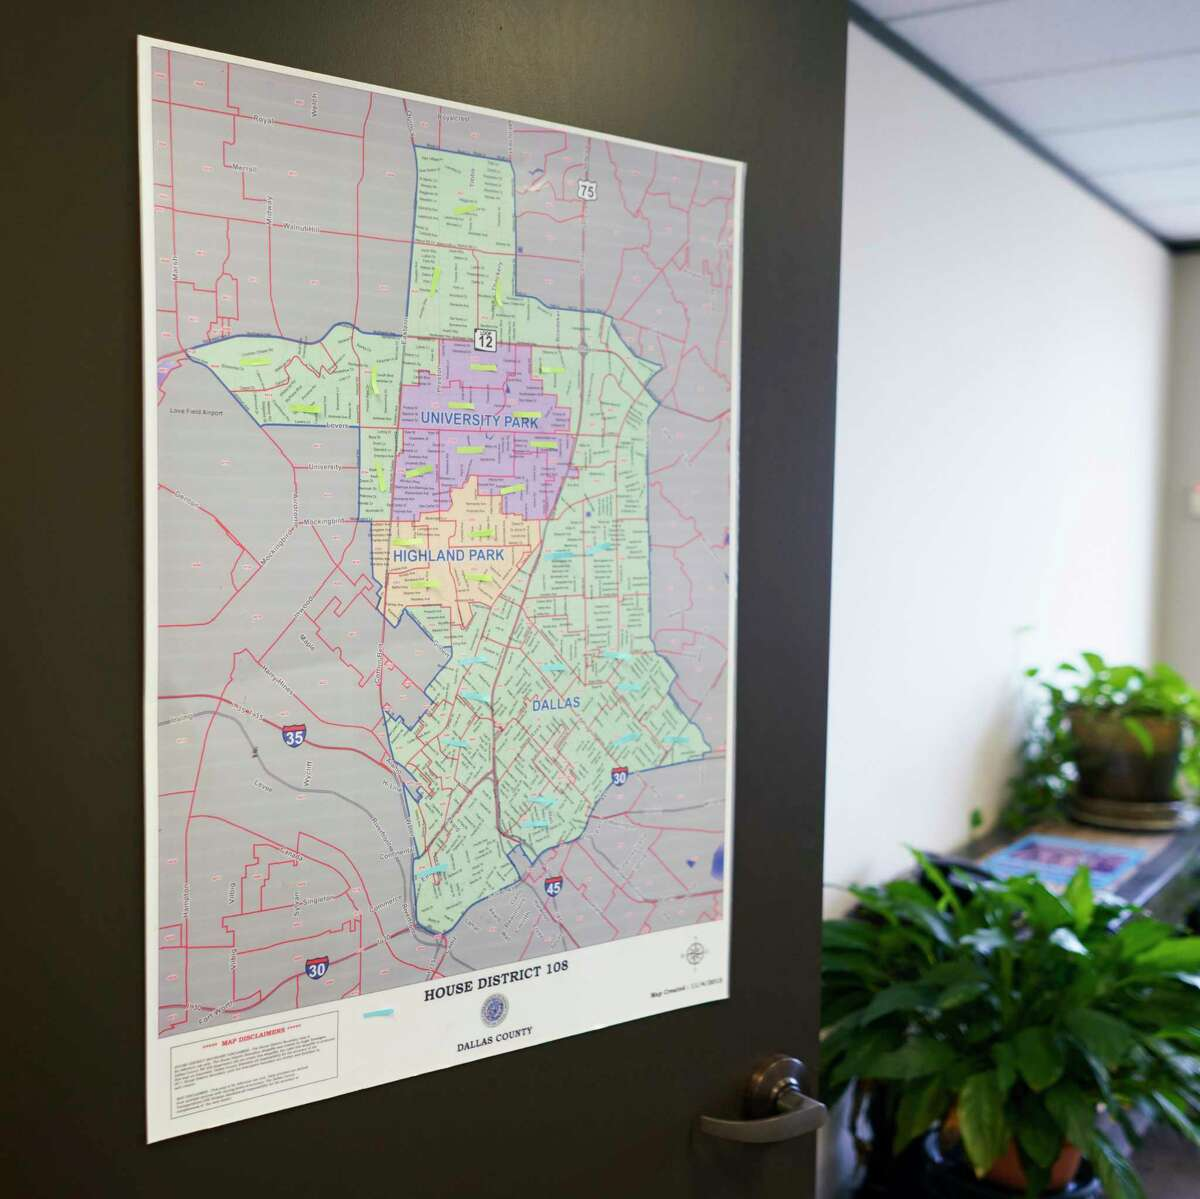 **EMBARGO: No electronic distribution, Web posting or street sales before Friday 3:01 a.m. ET July 05, 2019. No exceptions for any reasons. EMBARGO set by source.** A map of Texas House district No. 108 hangs on the door at the campaign offices of Tom Ervin, who is one of three Democrats campaigning for a Dallas-based State House district that is up for election in 2020, in Dallas, July 2, 2019. With the nation?•s political maps hanging in the balance, Democrats are racing to win back statehouse chambers and Republicans are rushing to defend gains from 2010. (Allison V. Smith/The New York Times)